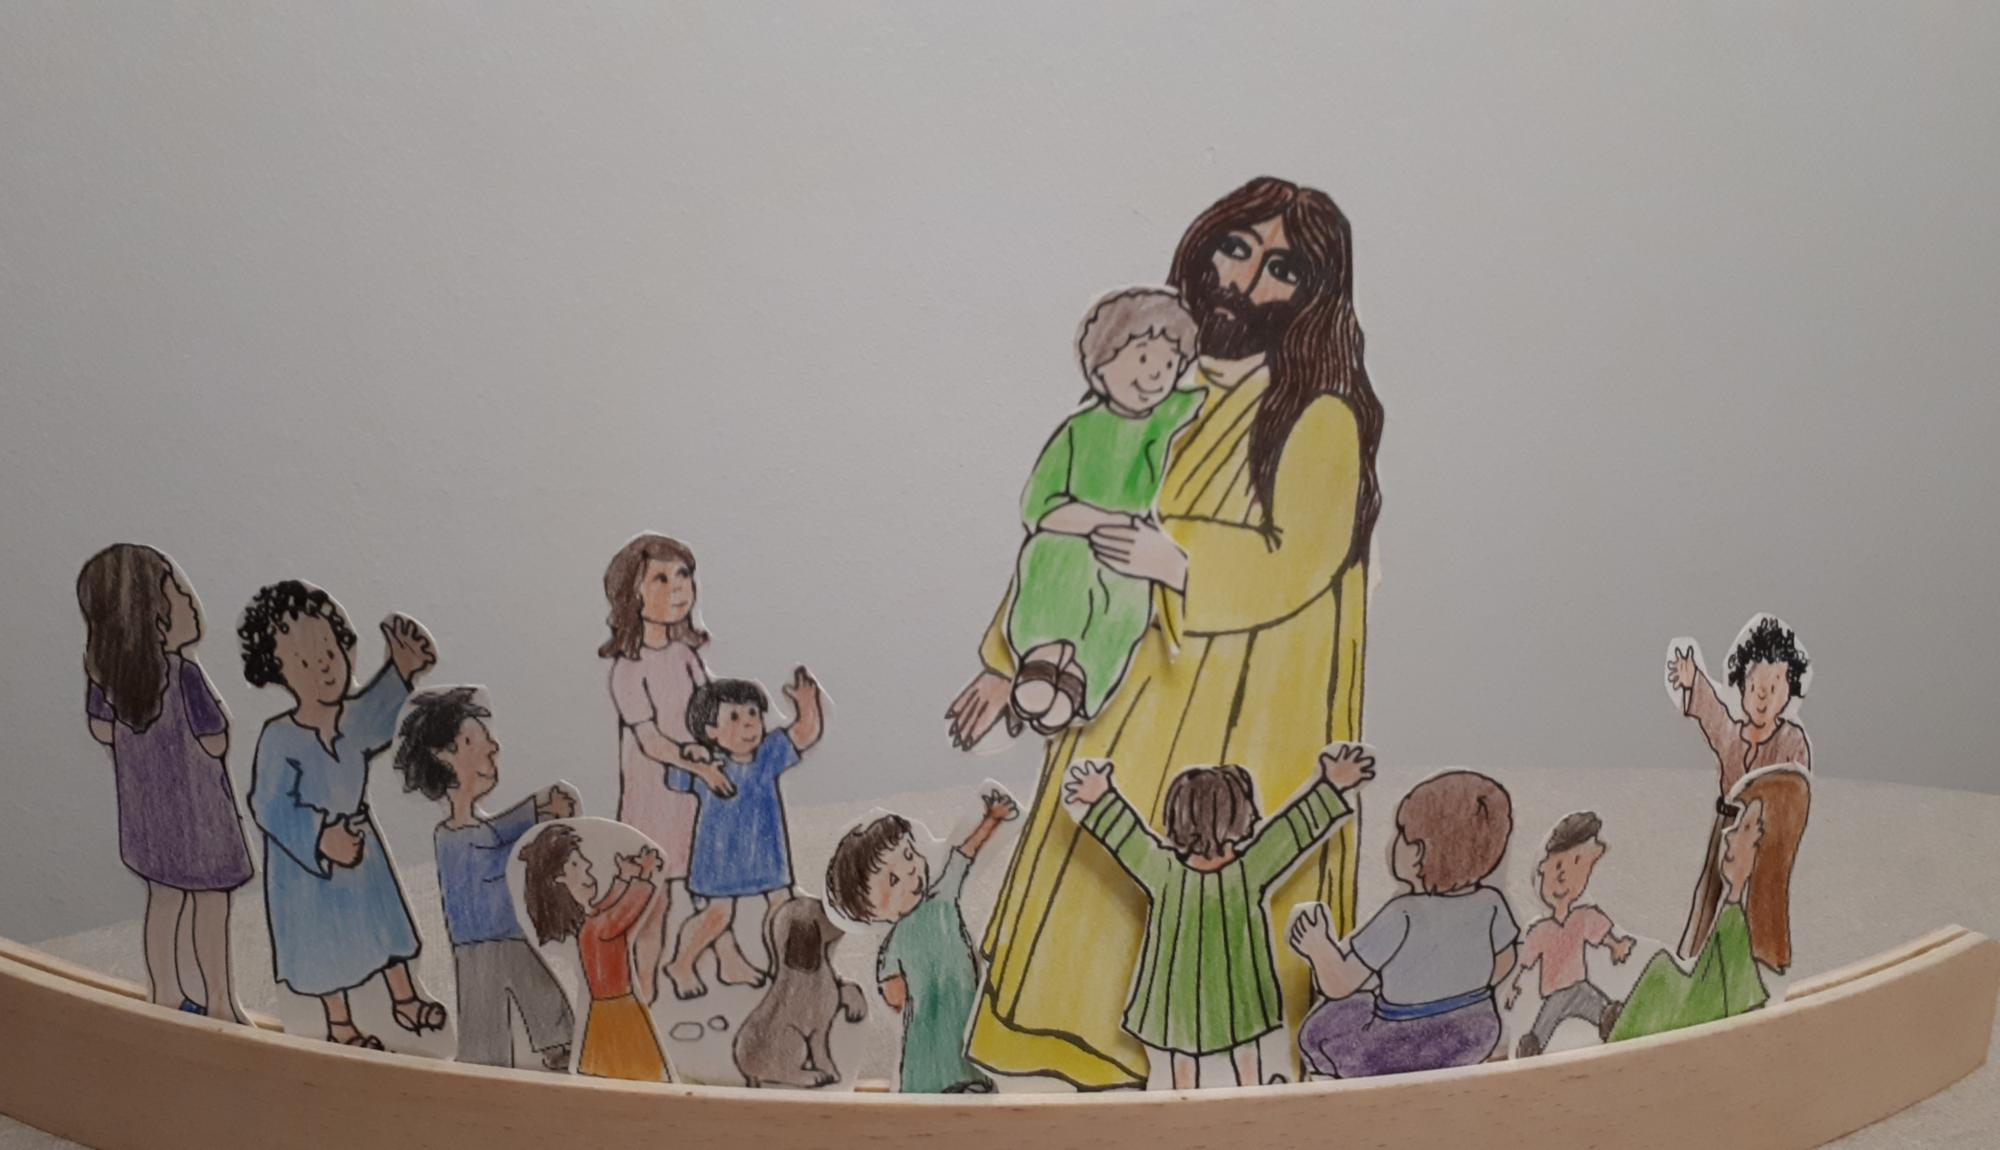 Video Jesus segnet Kinder (c) Monika Daus